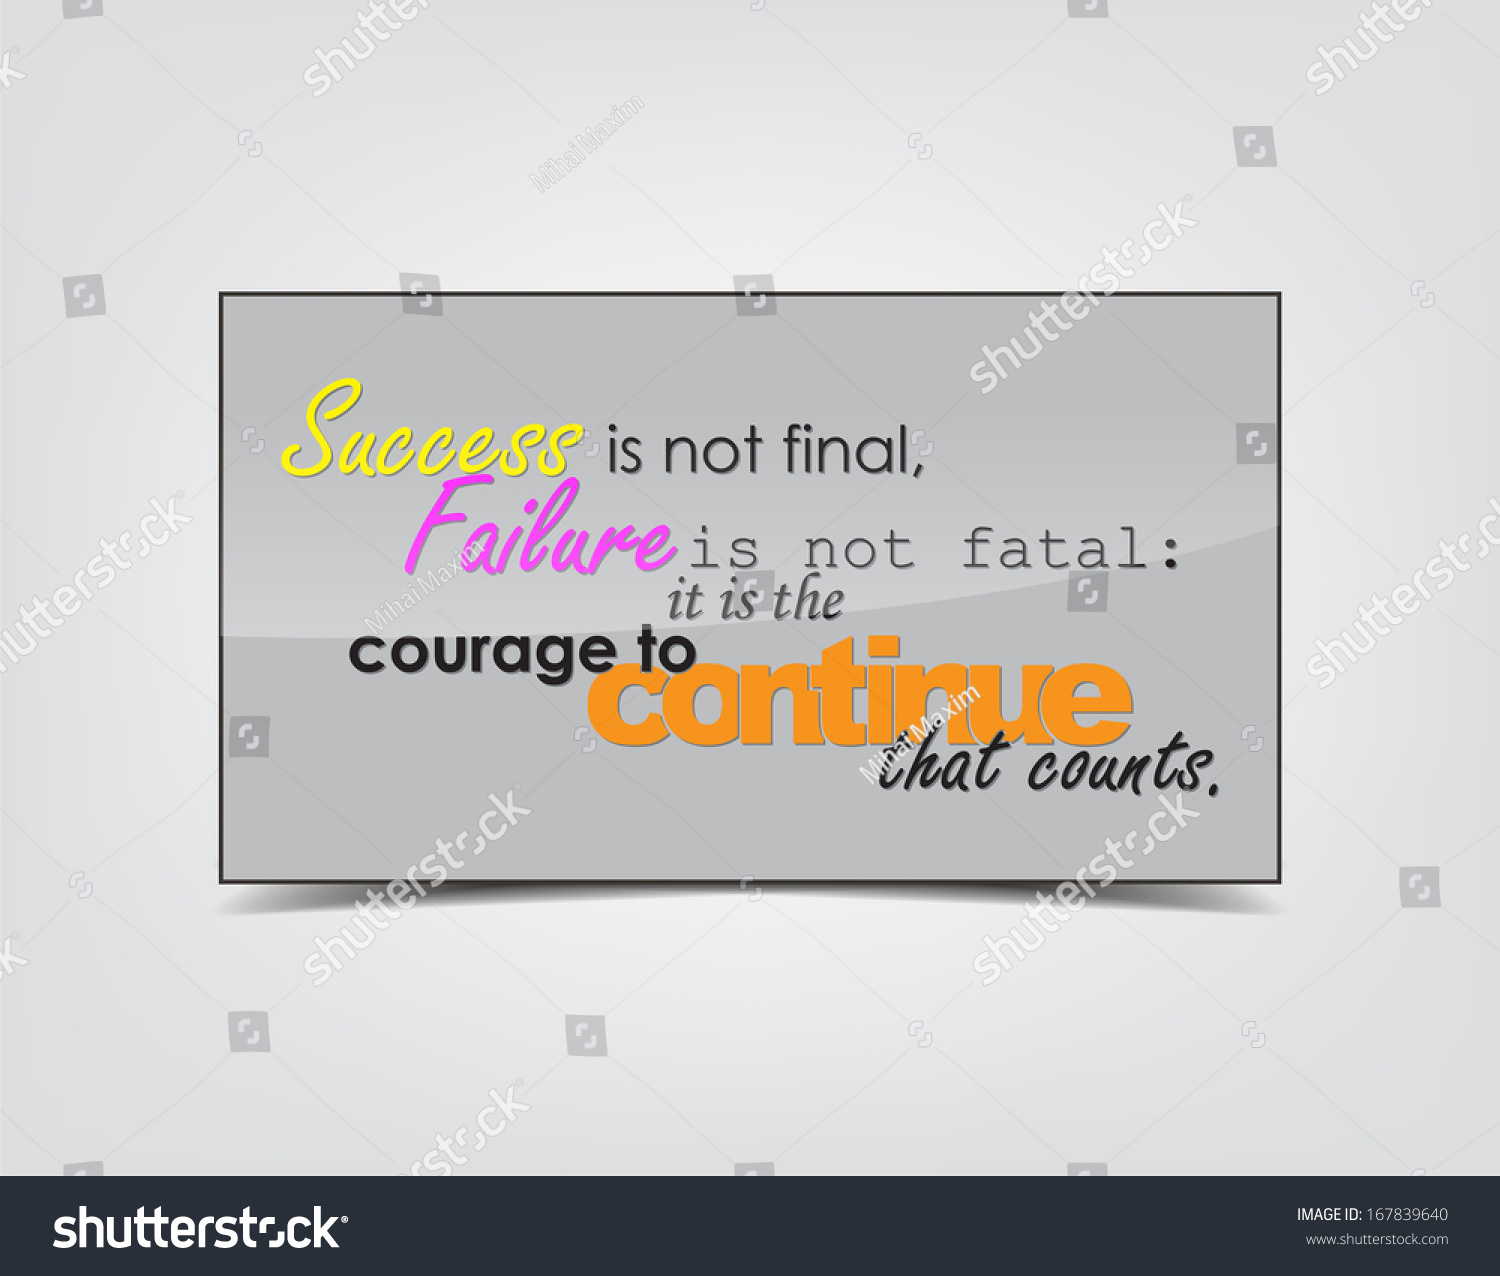 Inspirational Quotes About Failure: Success Is Not Final, Failure Is Not Fatal: It Is The